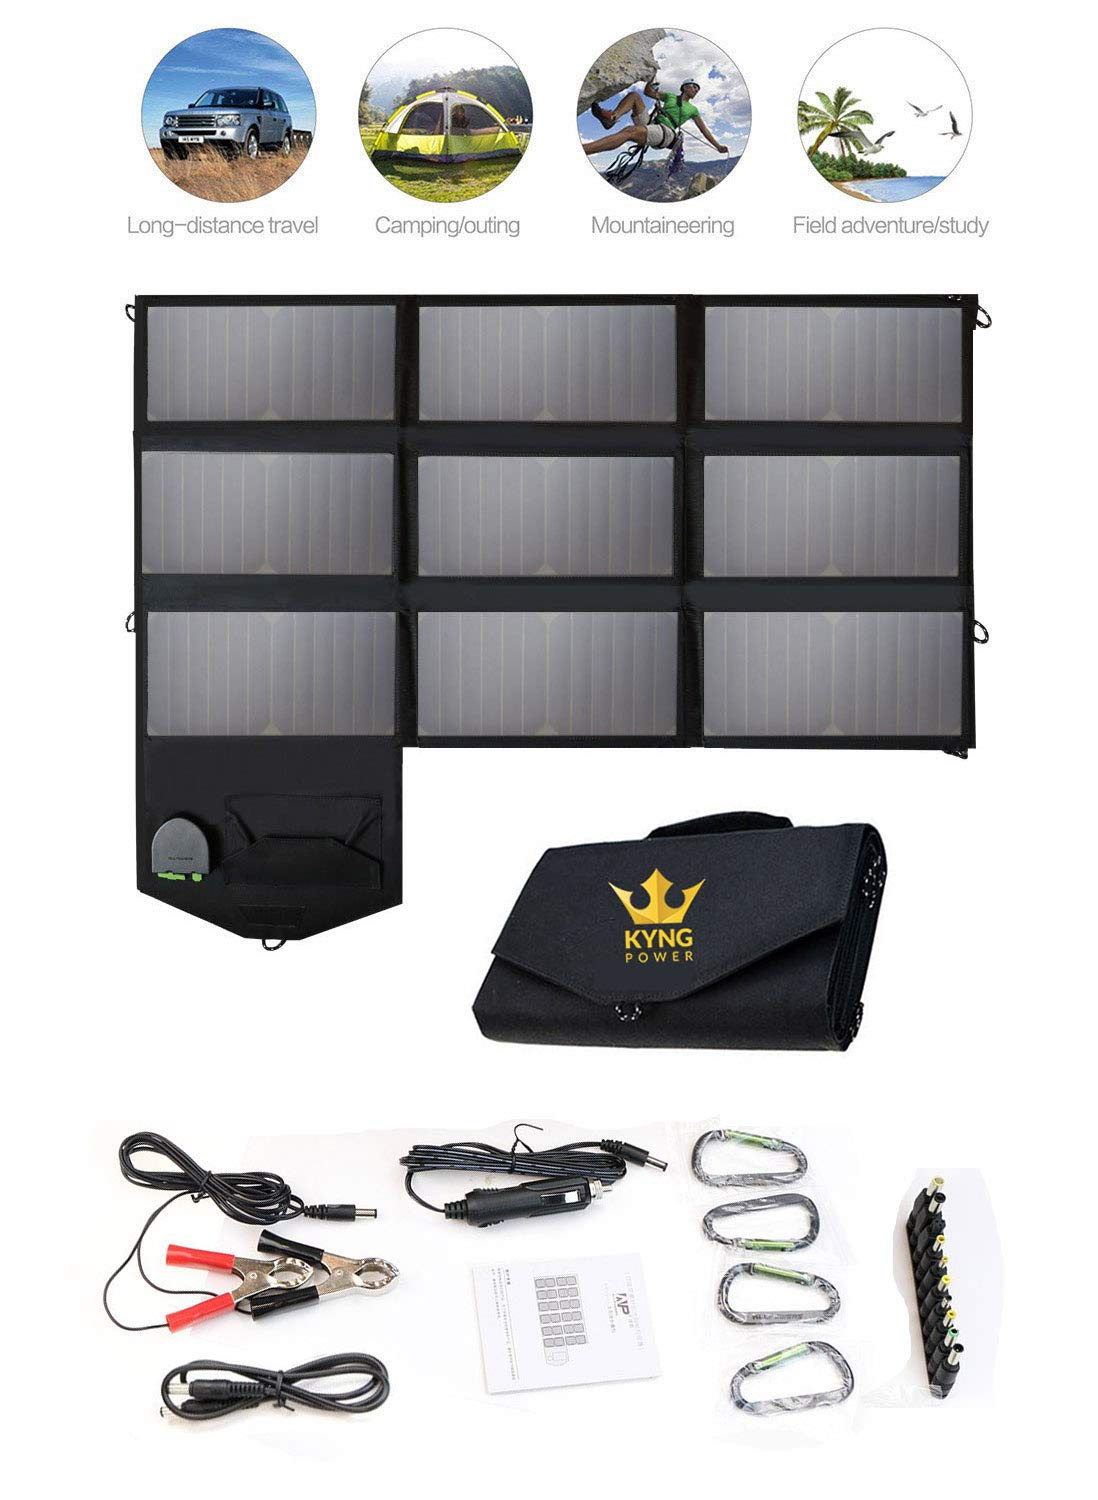 Kyng Power Foldable Solar Panel Charger Portable 60w Charger Solar Generator Panel Power Station Use with any Brand 18V Charging 5V USB 12V car charging/Camping, Emergency, Laptop, iPhone, Tablet, etc by Kyng Power